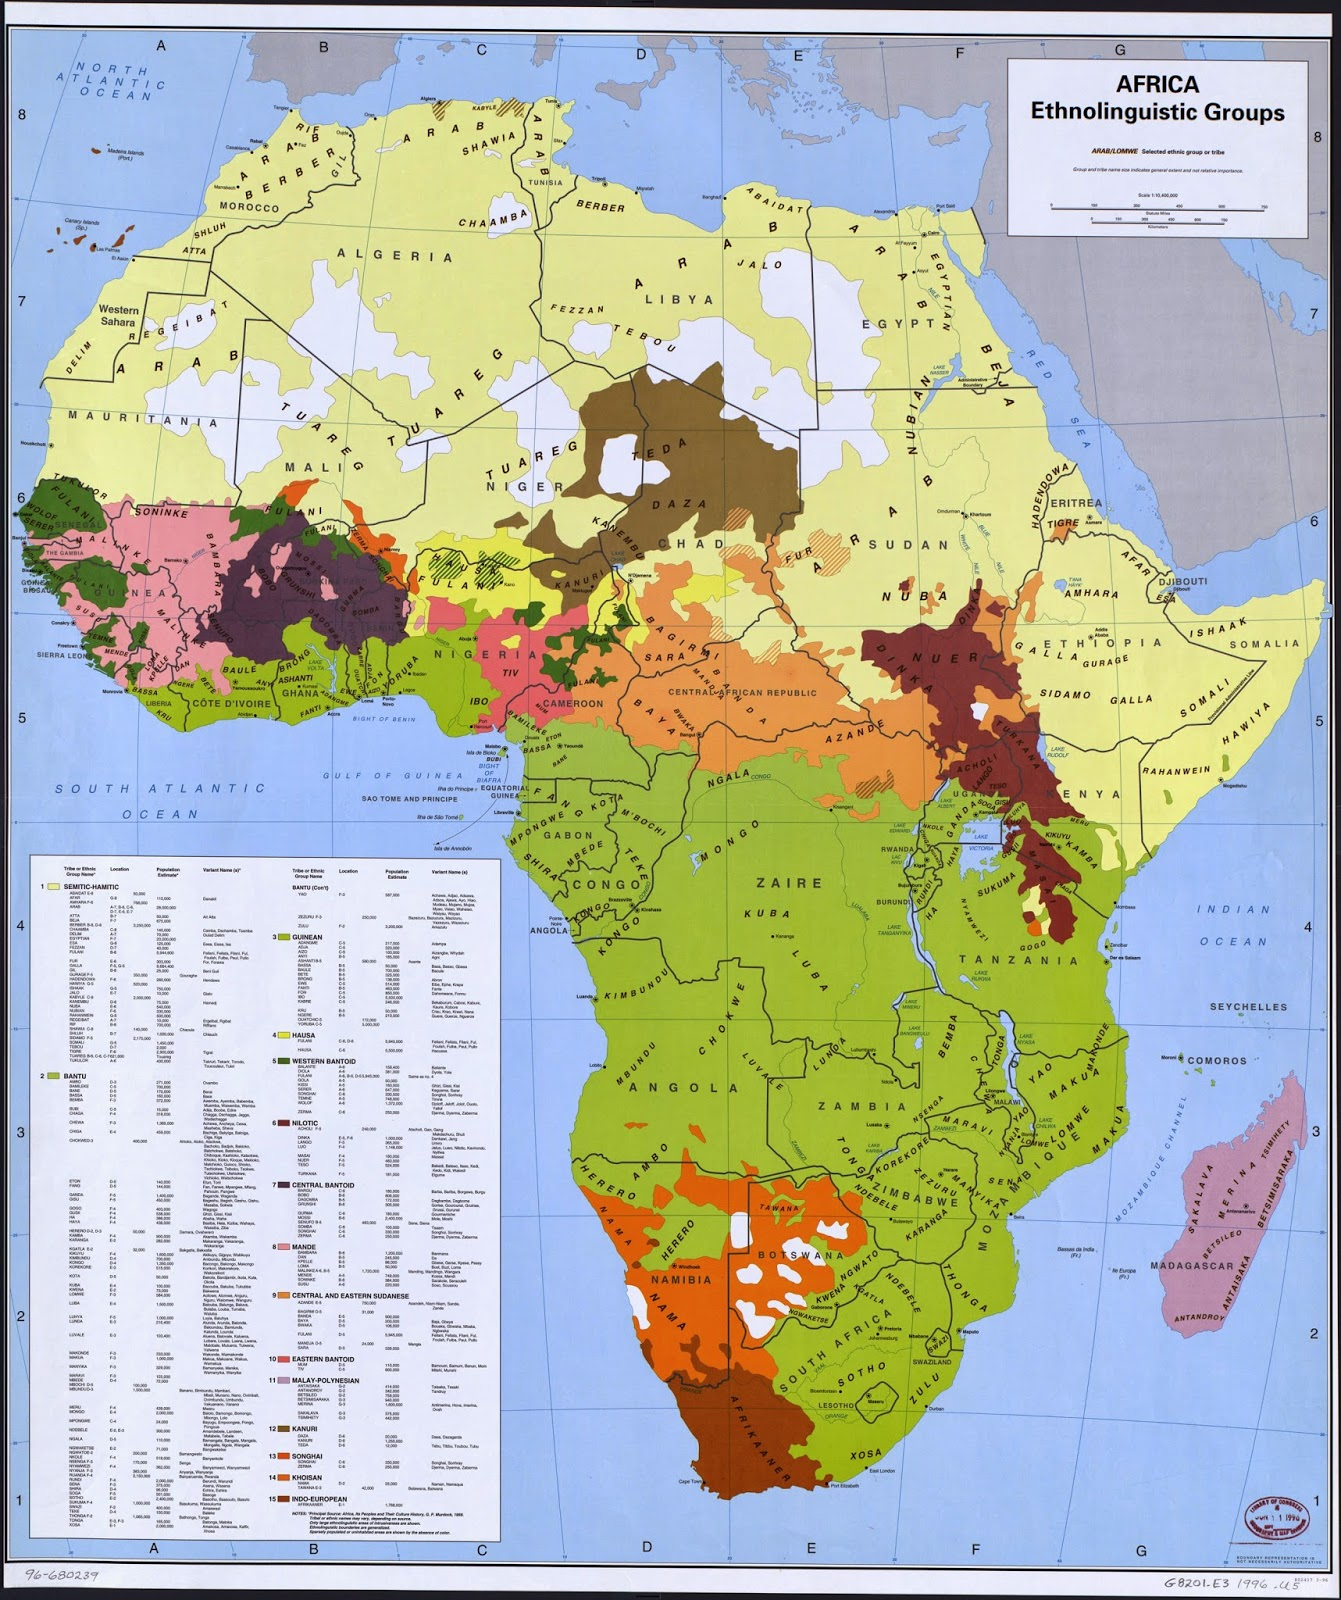 of being redrawn violently or peacefully in the coming century as the continent finally sorts itself out just take one look at an ethnic map of the